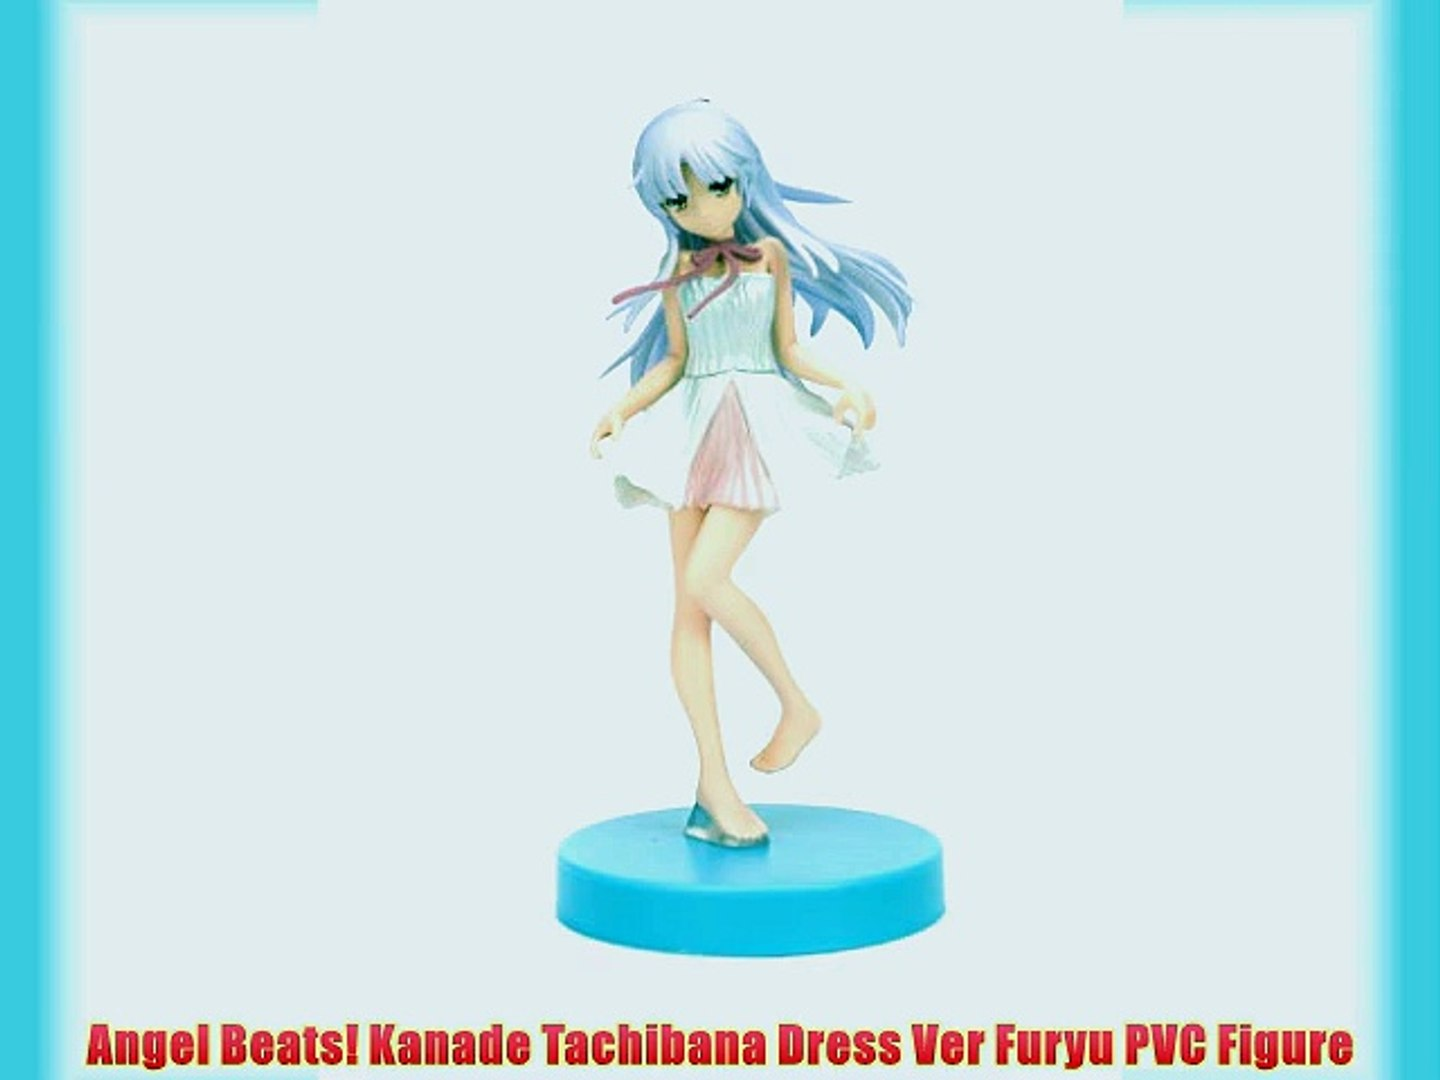 Angel Beats! Kanade Tachibana Dress Ver Furyu PVC Figure